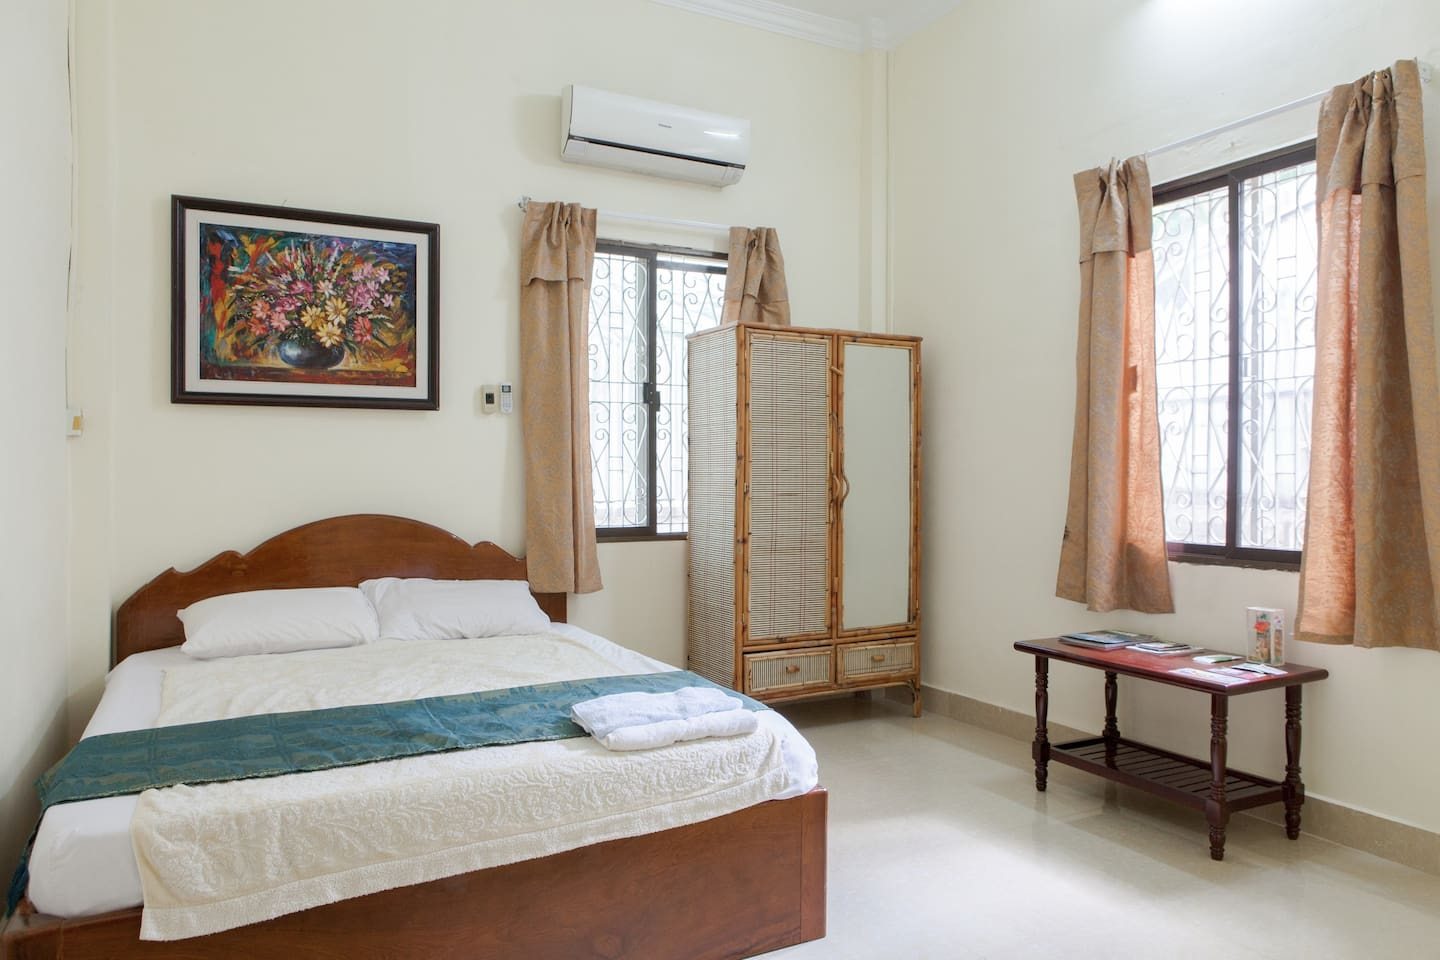 A simple a/c bedroom with attached bathroom in a 4 bedroom villa awaits you!